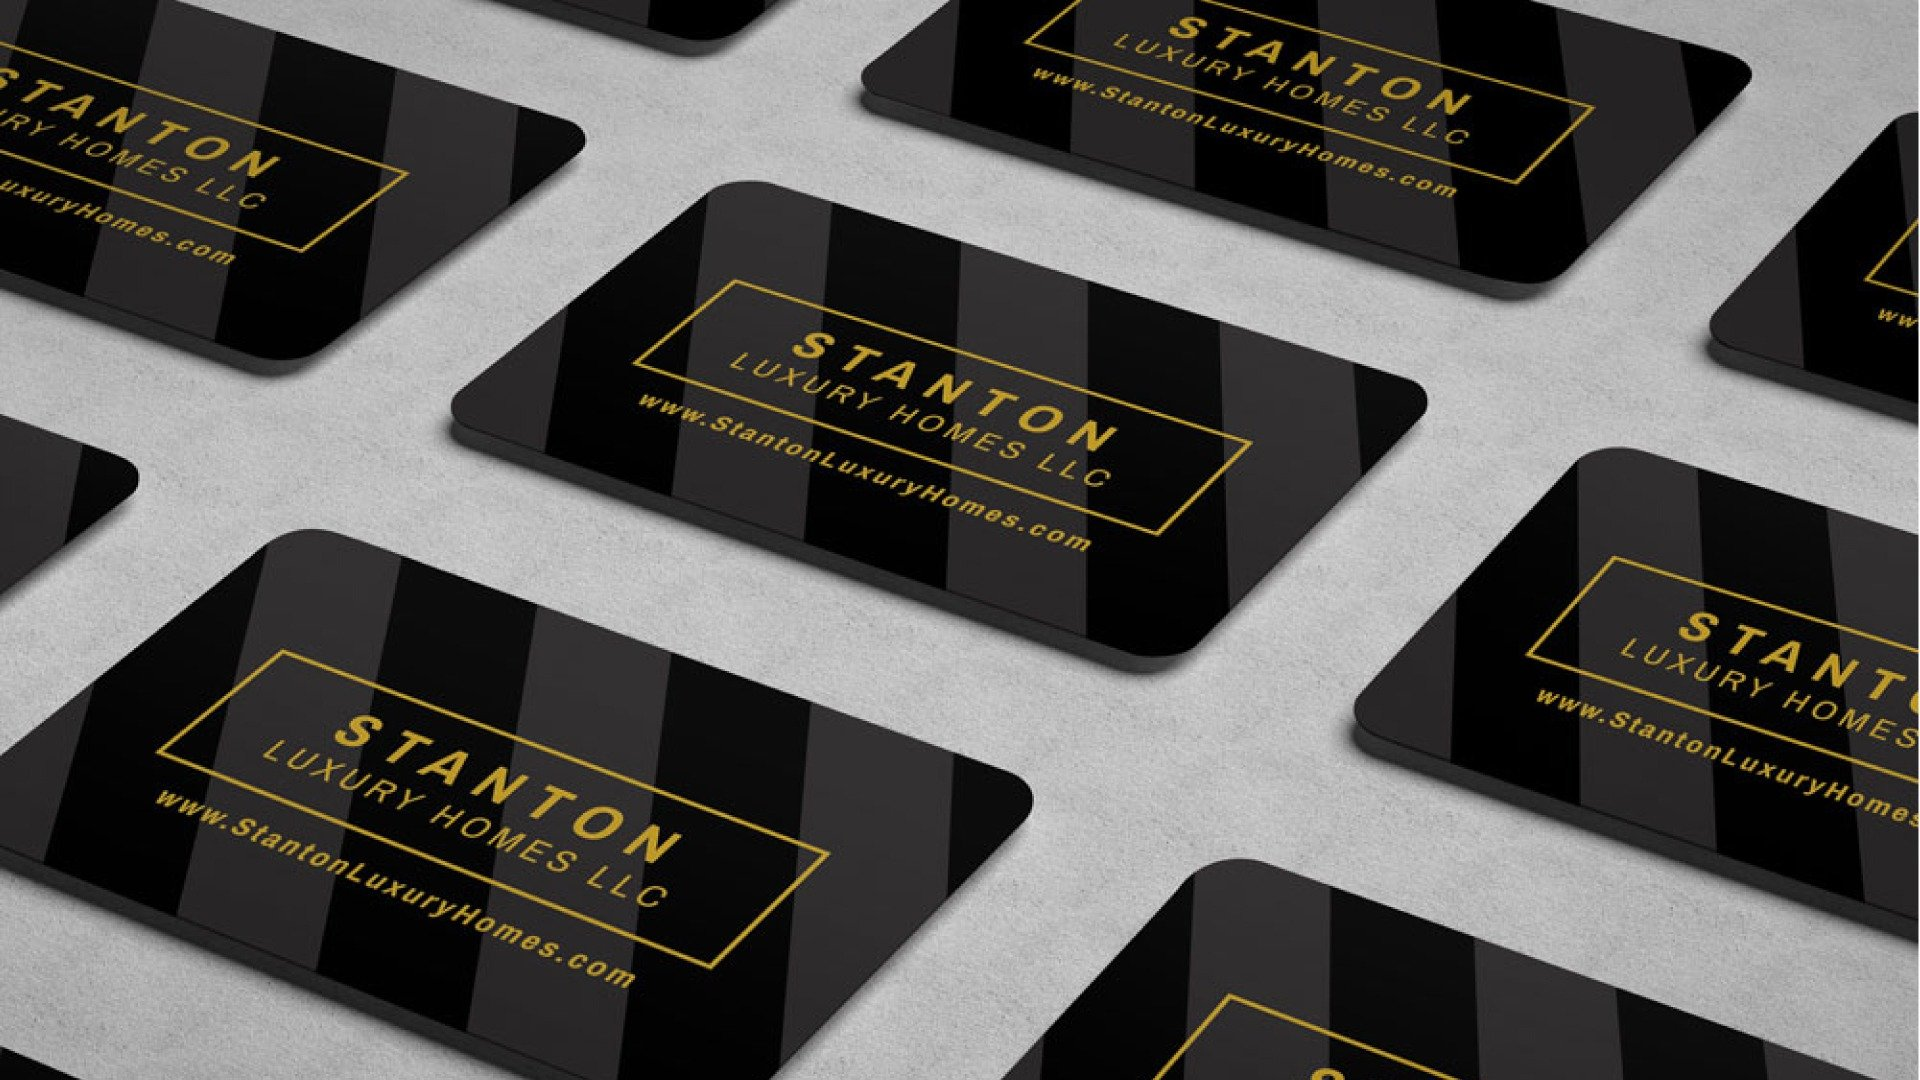 Stanton Luxury Homes business card